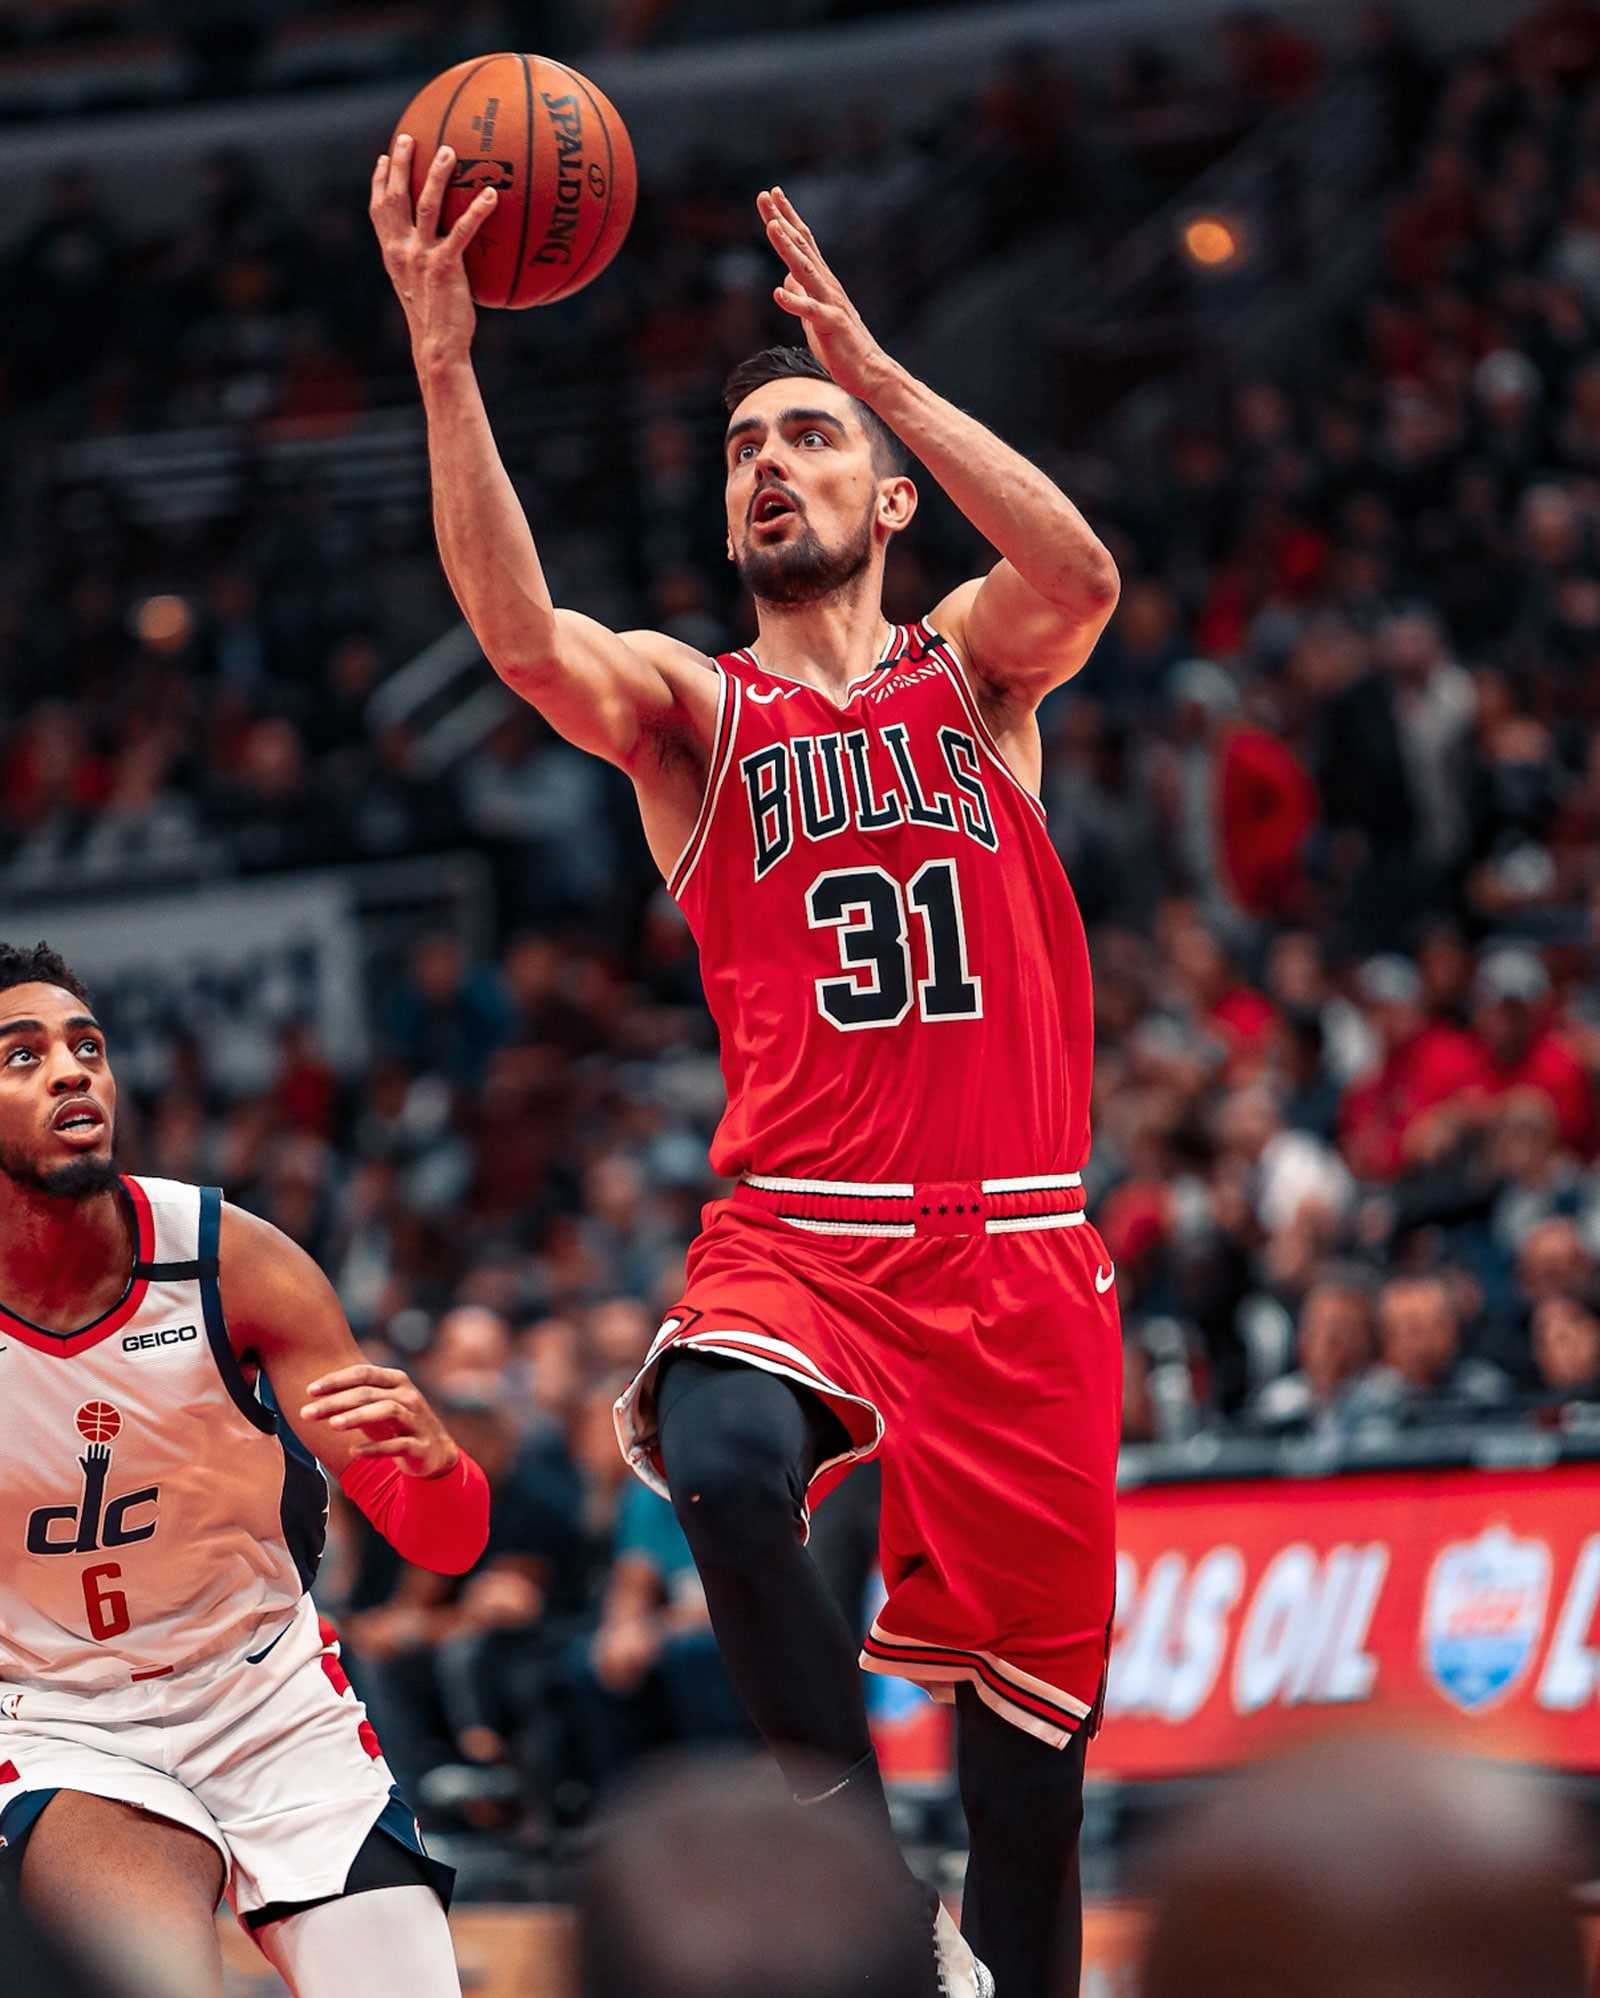 Tomas Satoransky had 15 points and 13 assists against his former team.